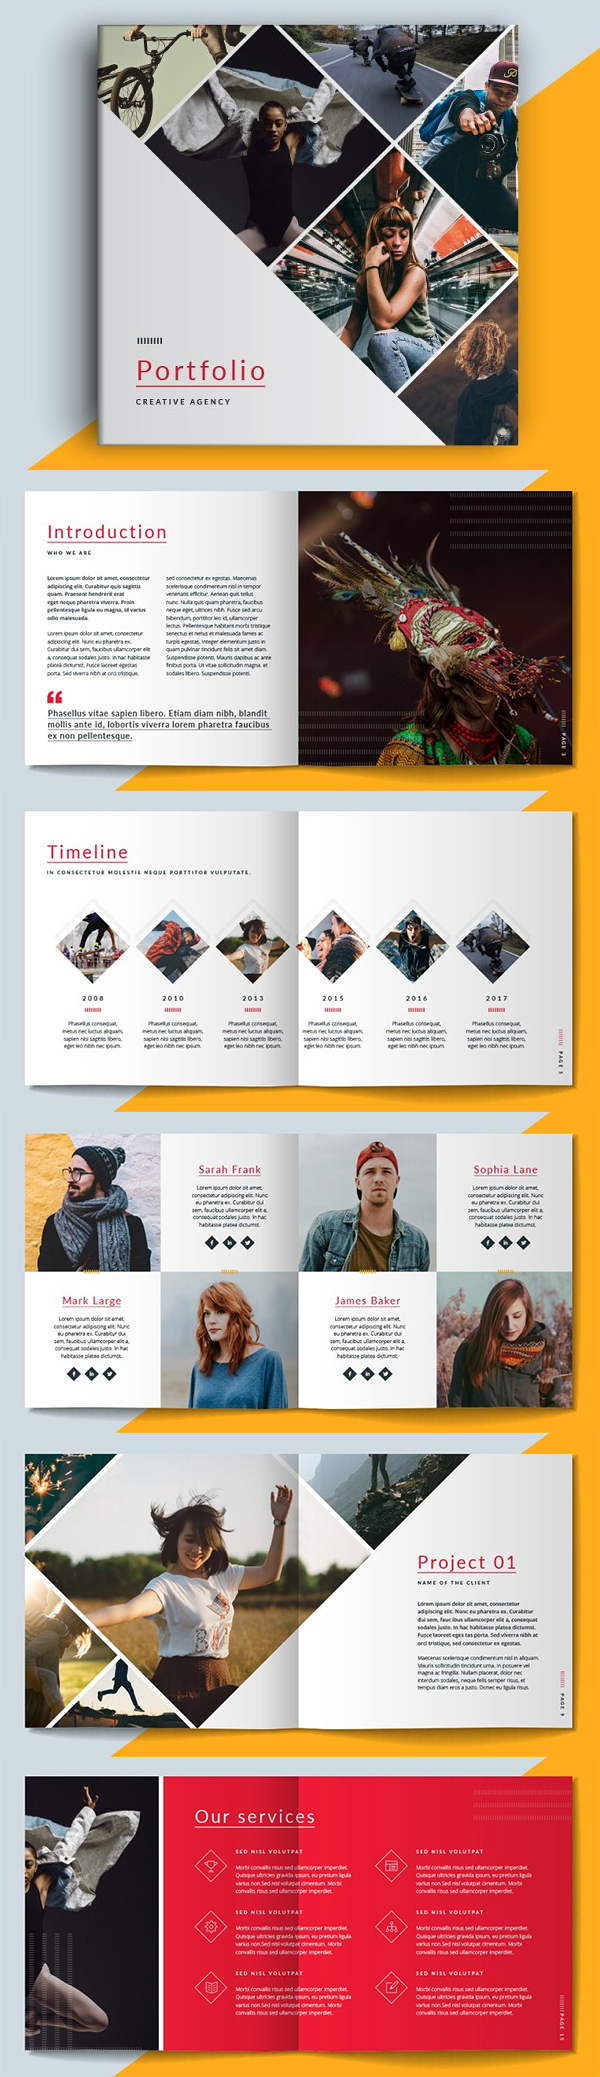 Square Portfolio Brochure Template